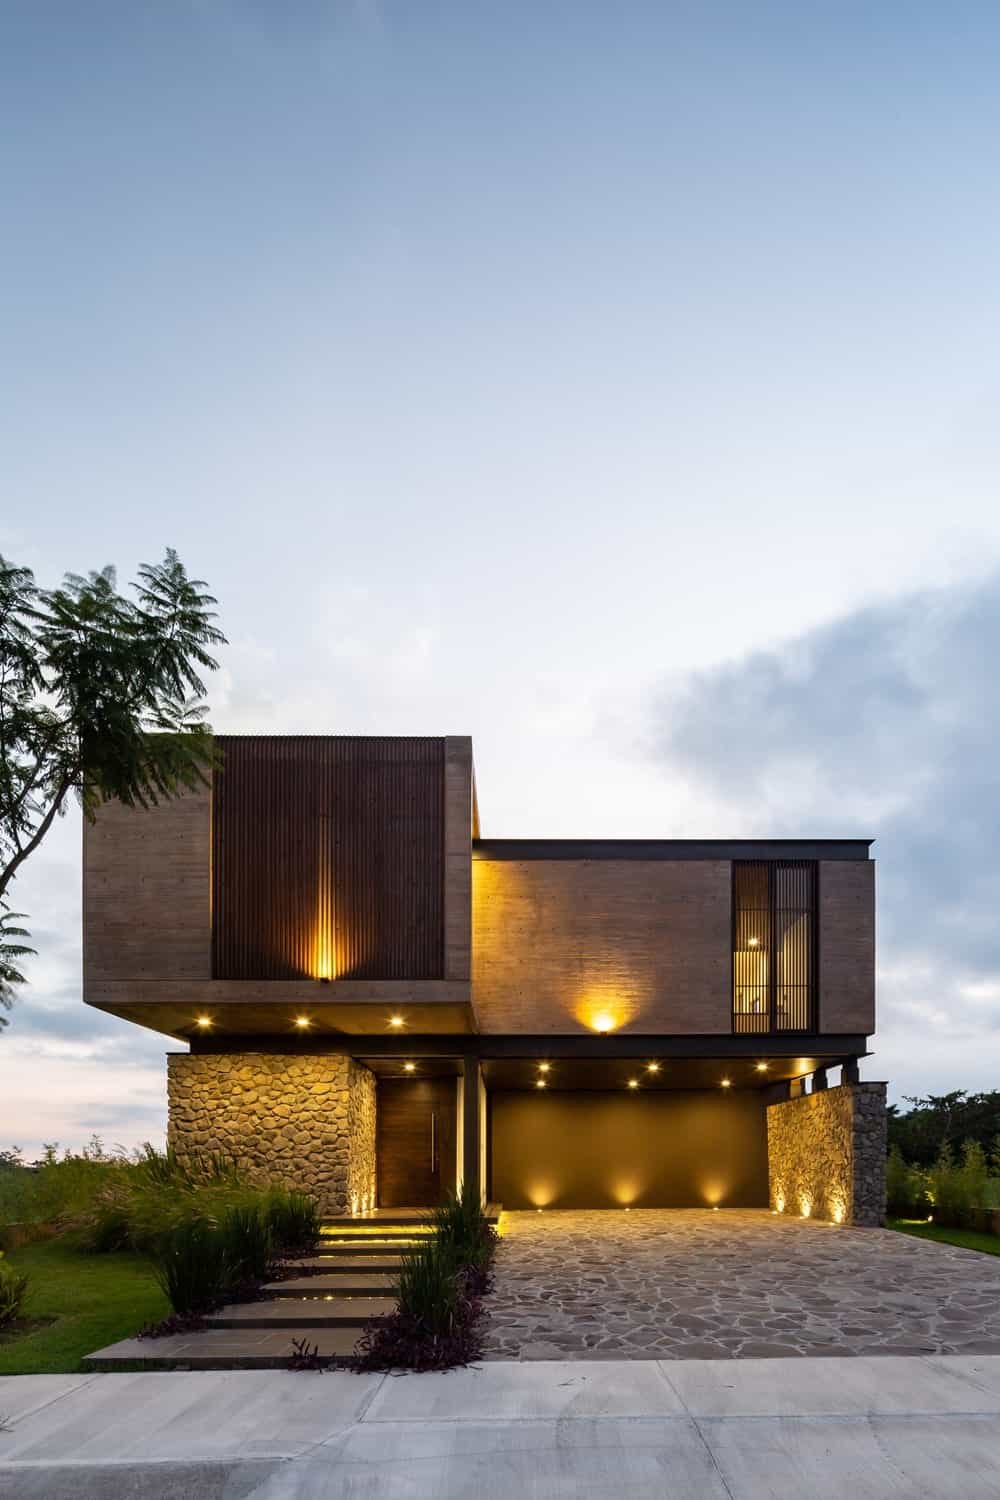 The stone walls are topped with concrete structures that are complemented by thin slat panels that glow warmly with the exterior lights.